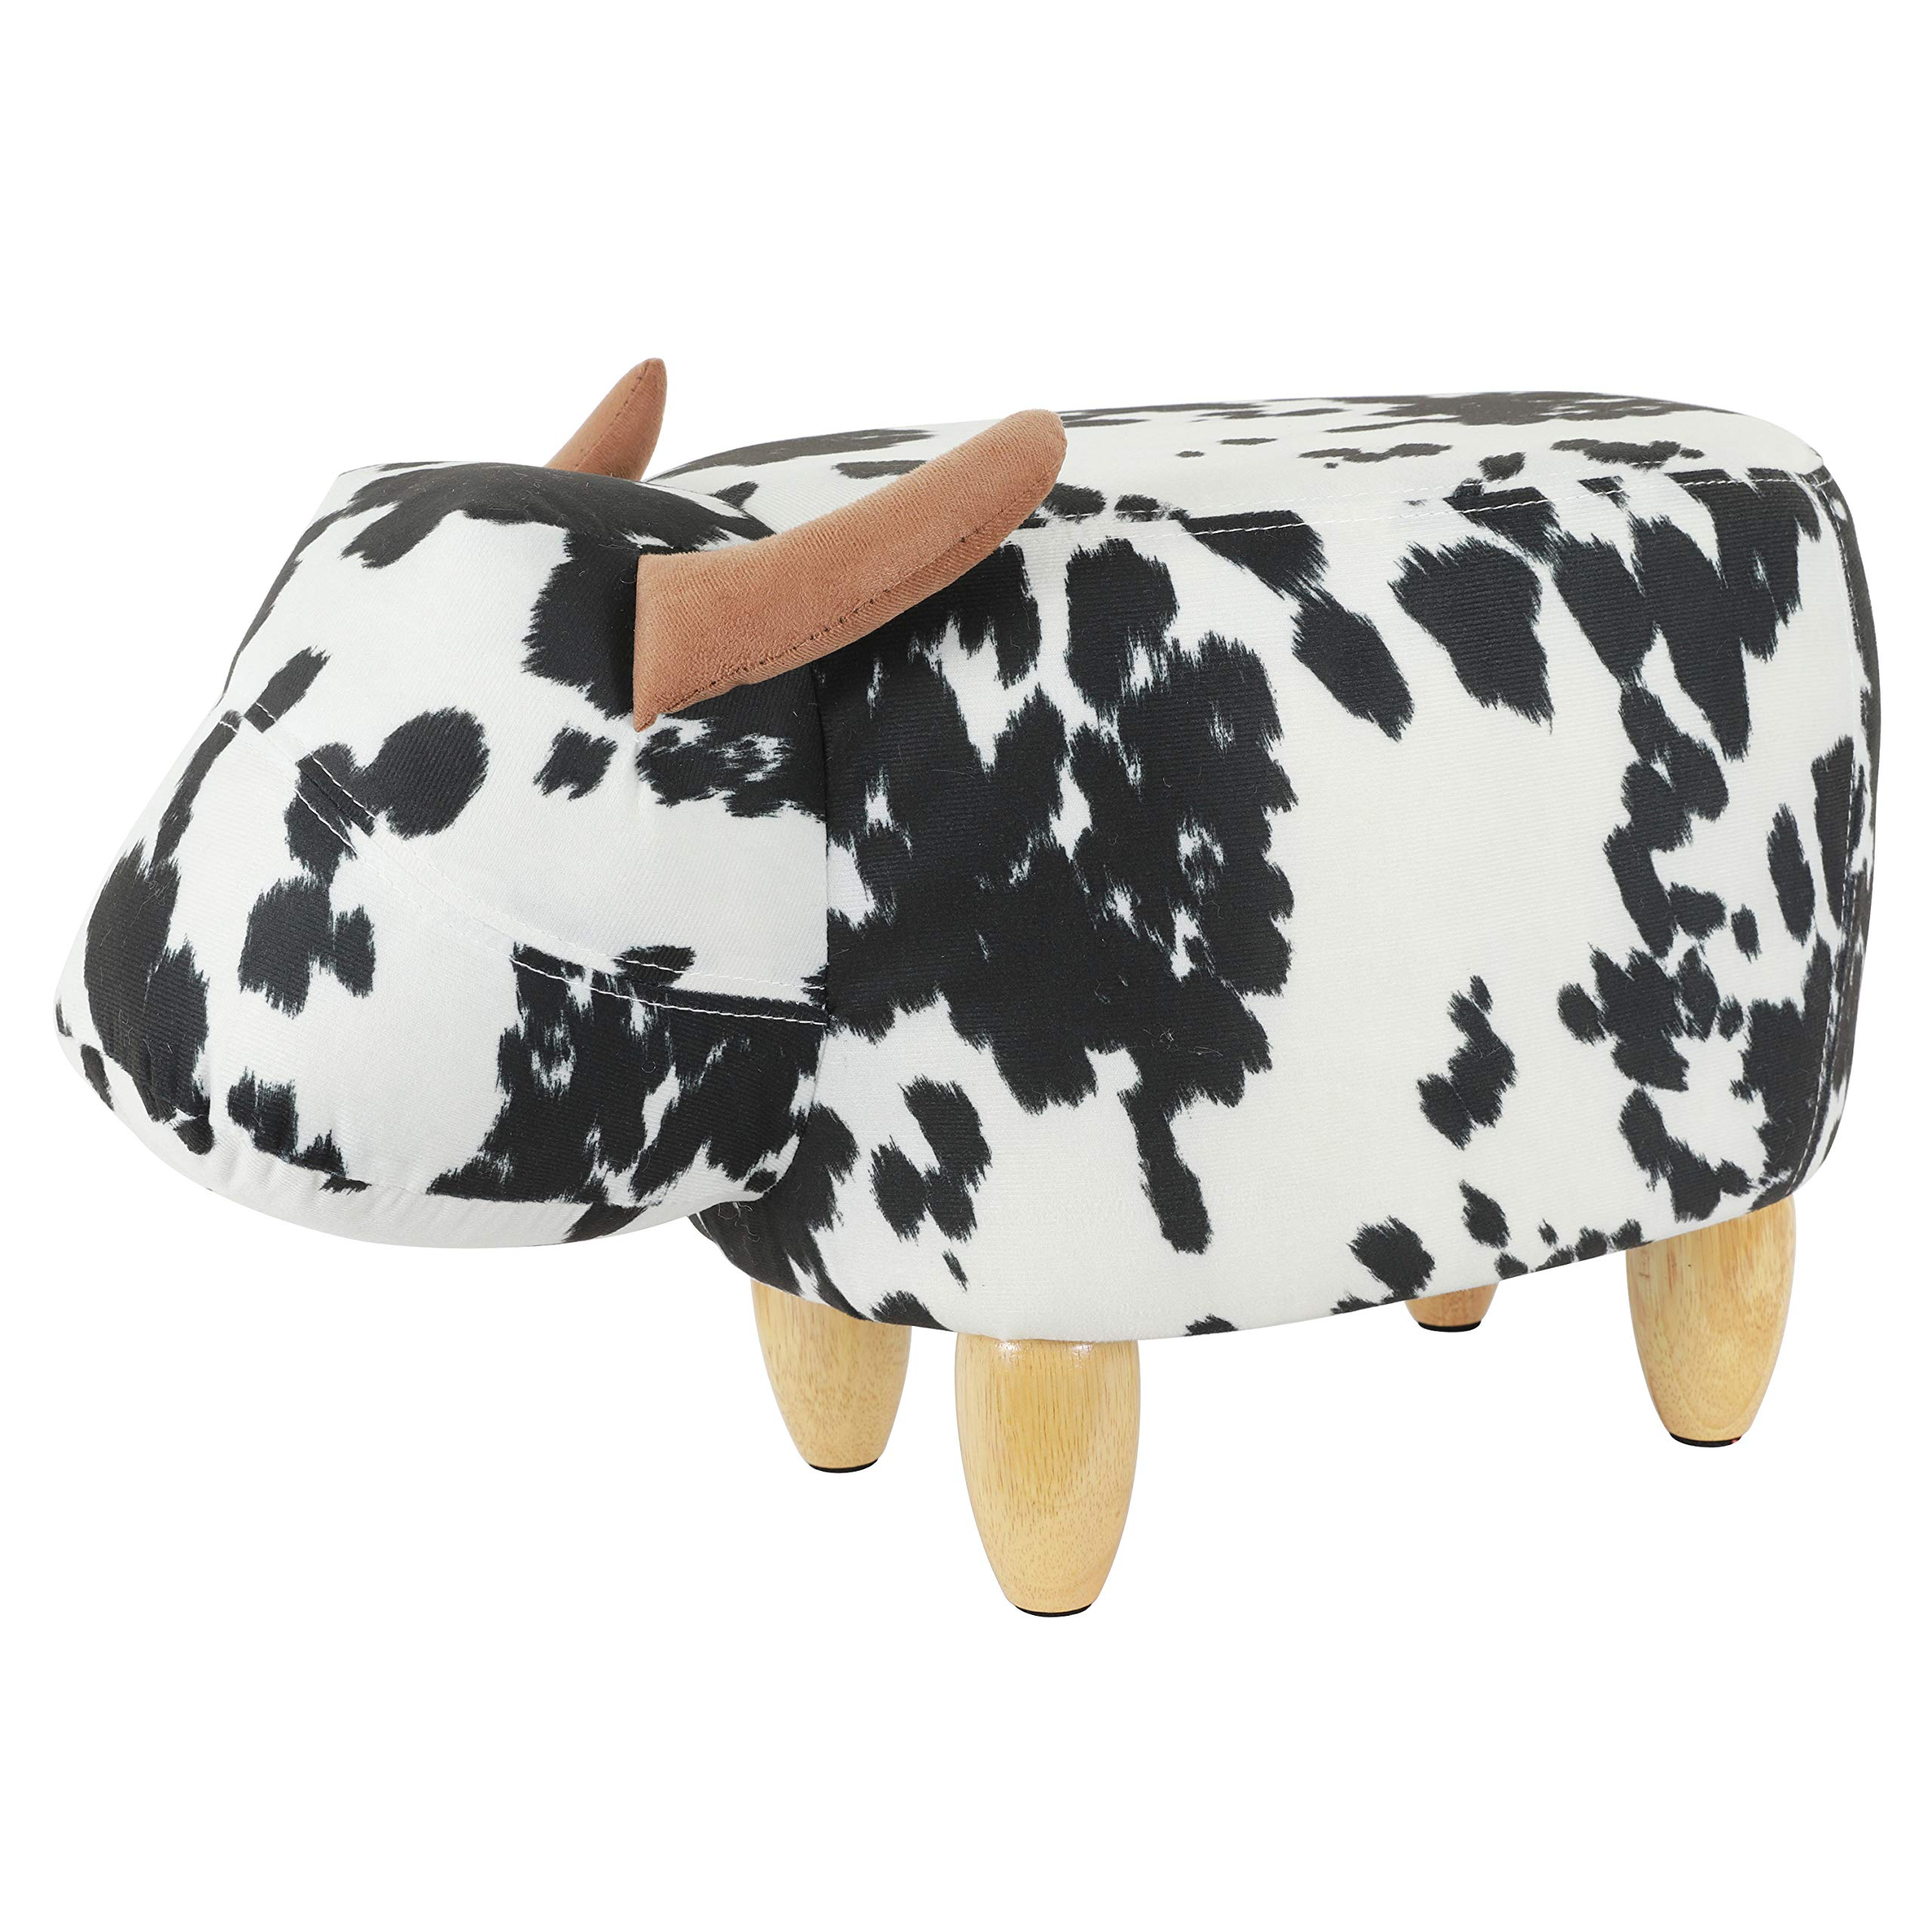 Decor Therapy Storage Stool, Cow by Decor Therapy